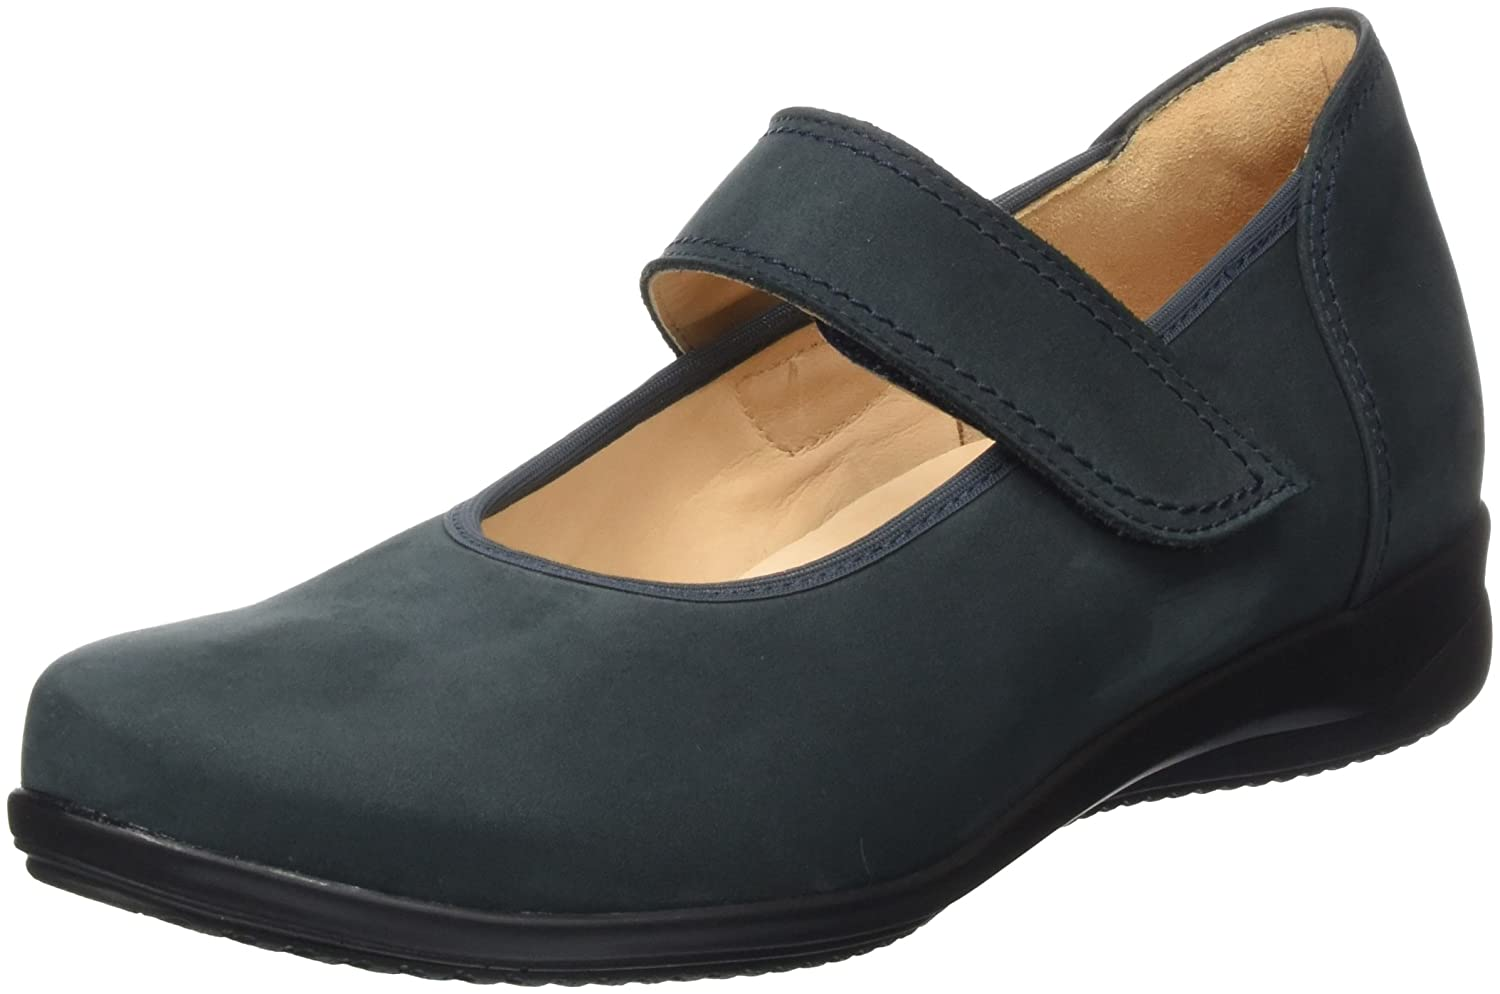 Womens FIONA, Weite F Closed ballerinas Black Size: 3.5 Ganter